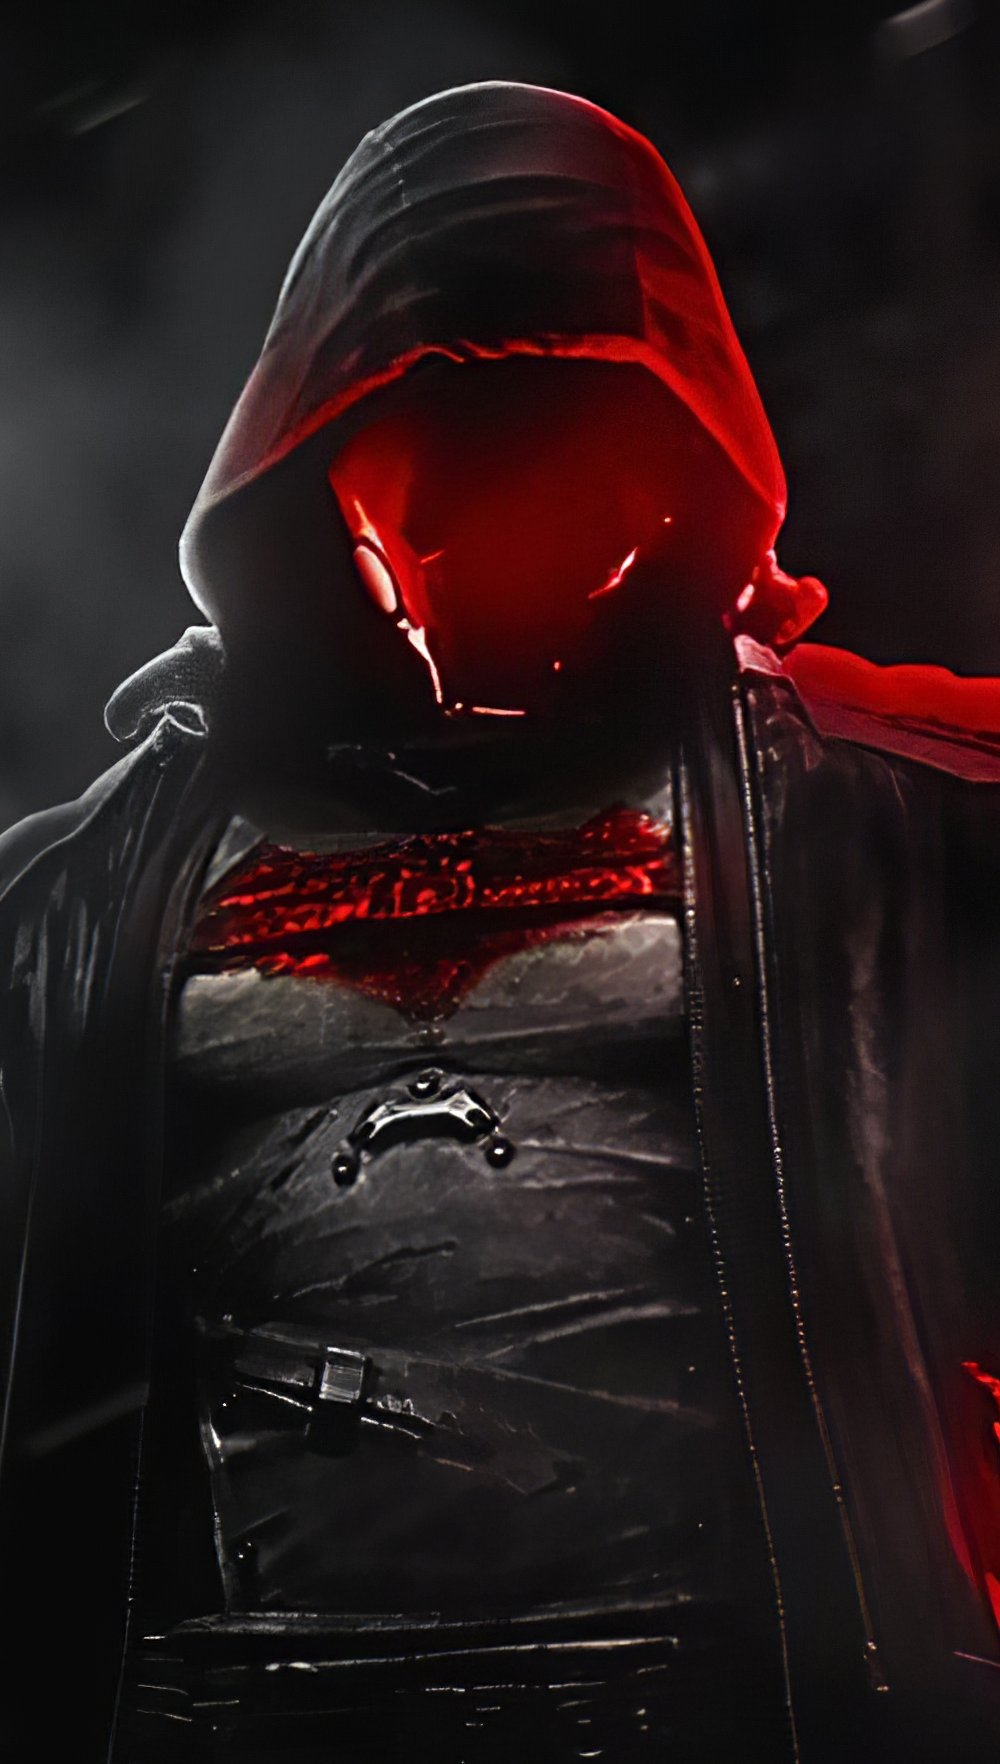 Wallpaper Red Hood in the night Vertical